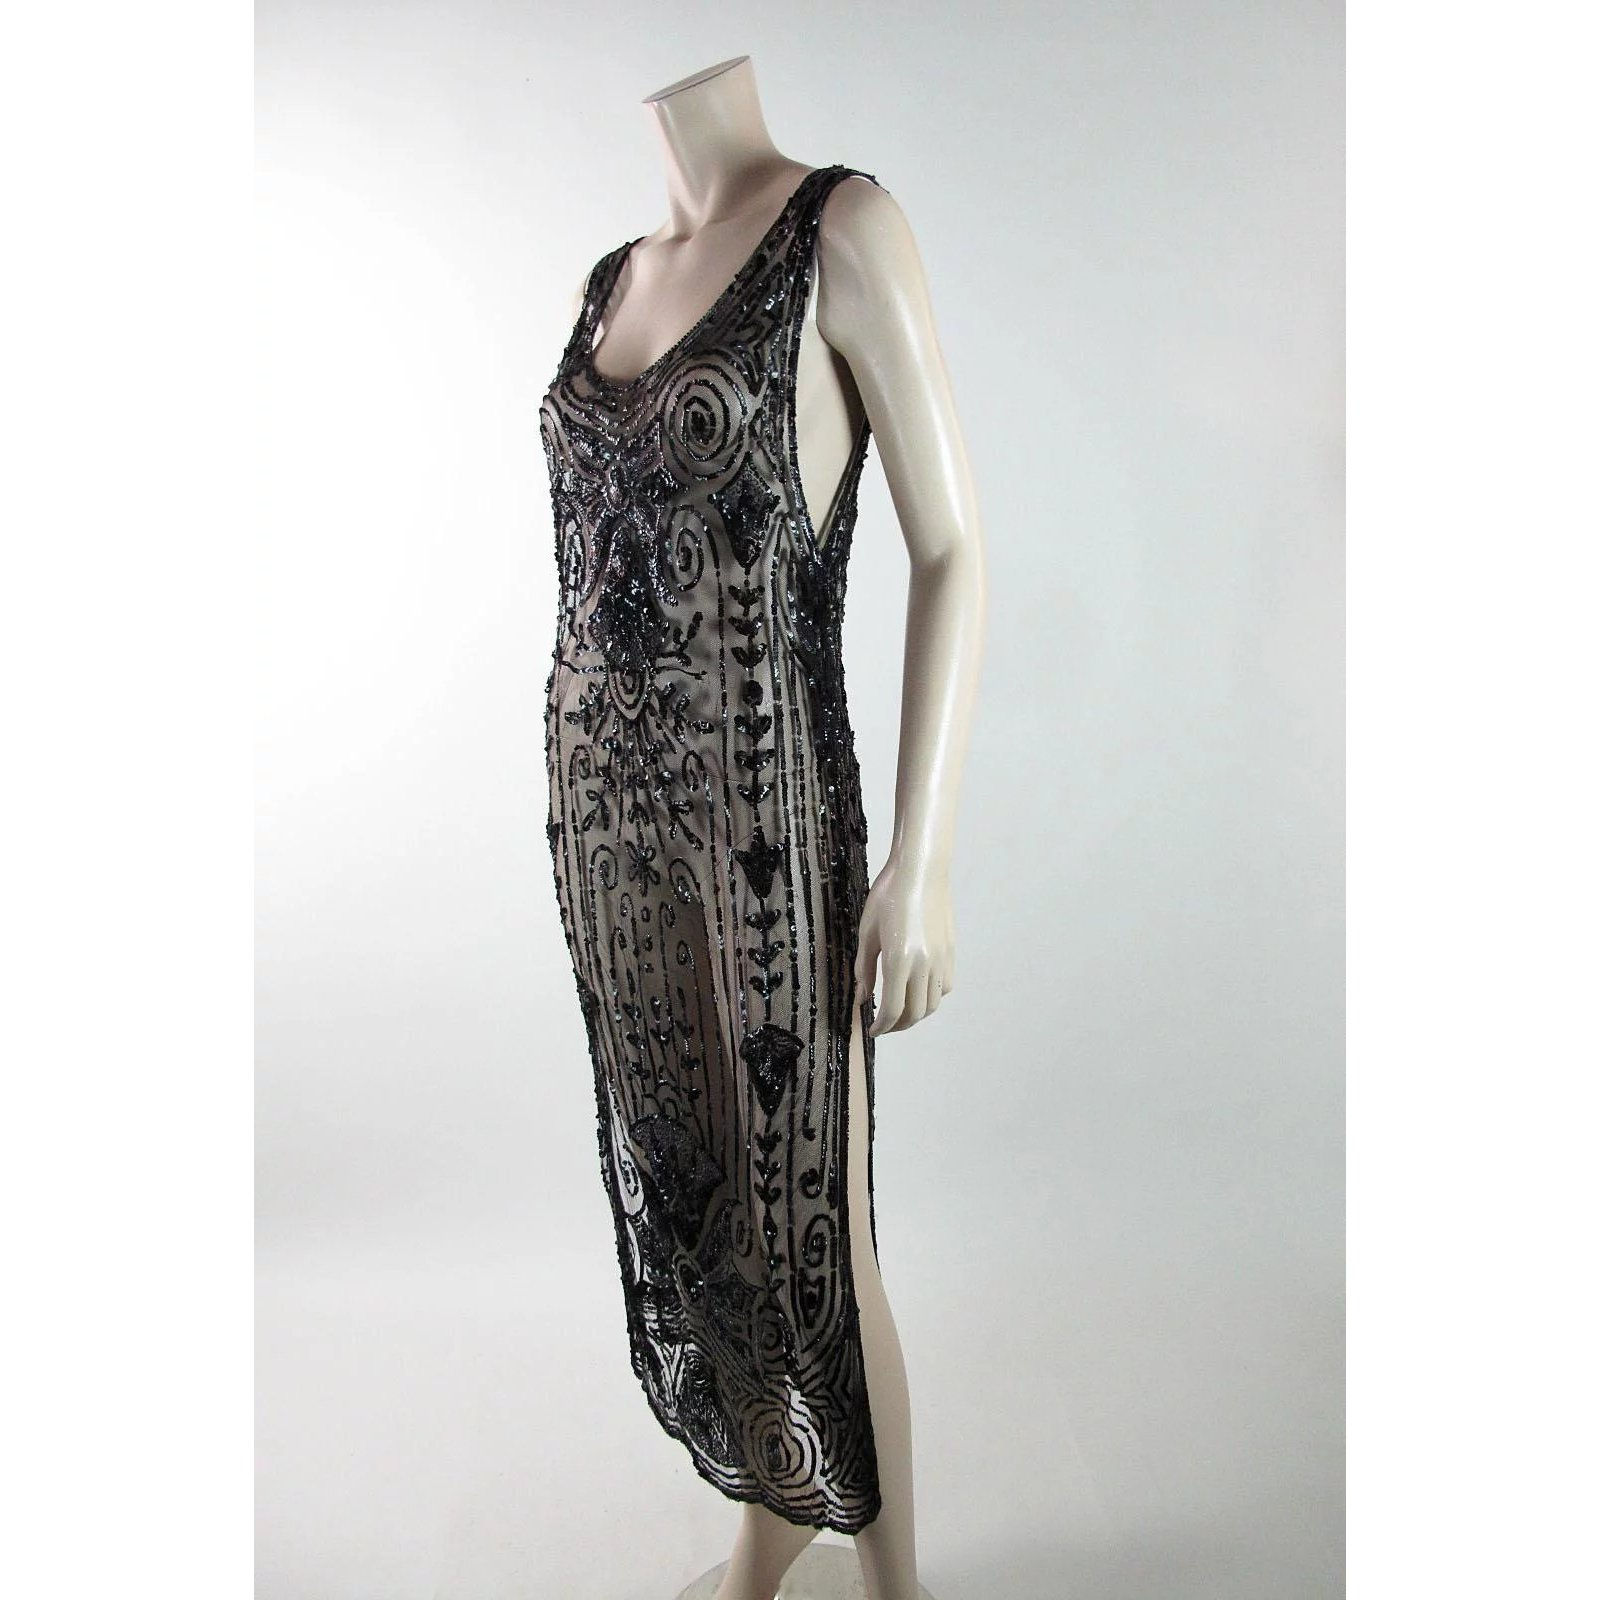 466417b901d Art Deco 1920 s Vintage Sequined Tabard Style Evening Dress   Marzilli  Vintage